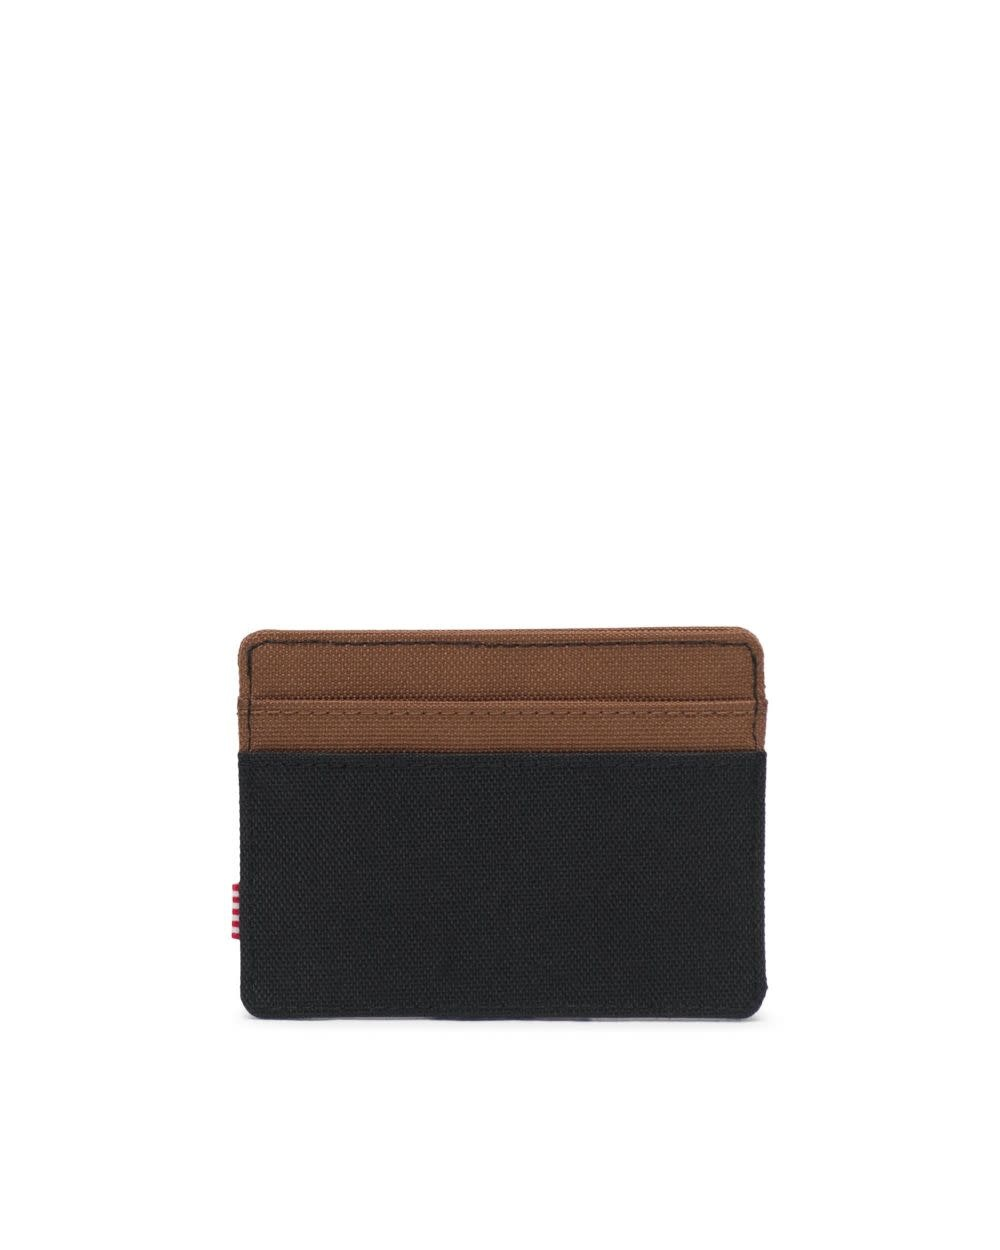 Herschel Supply Co. Herschel Charlie Wallet - Black/Saddle Brown